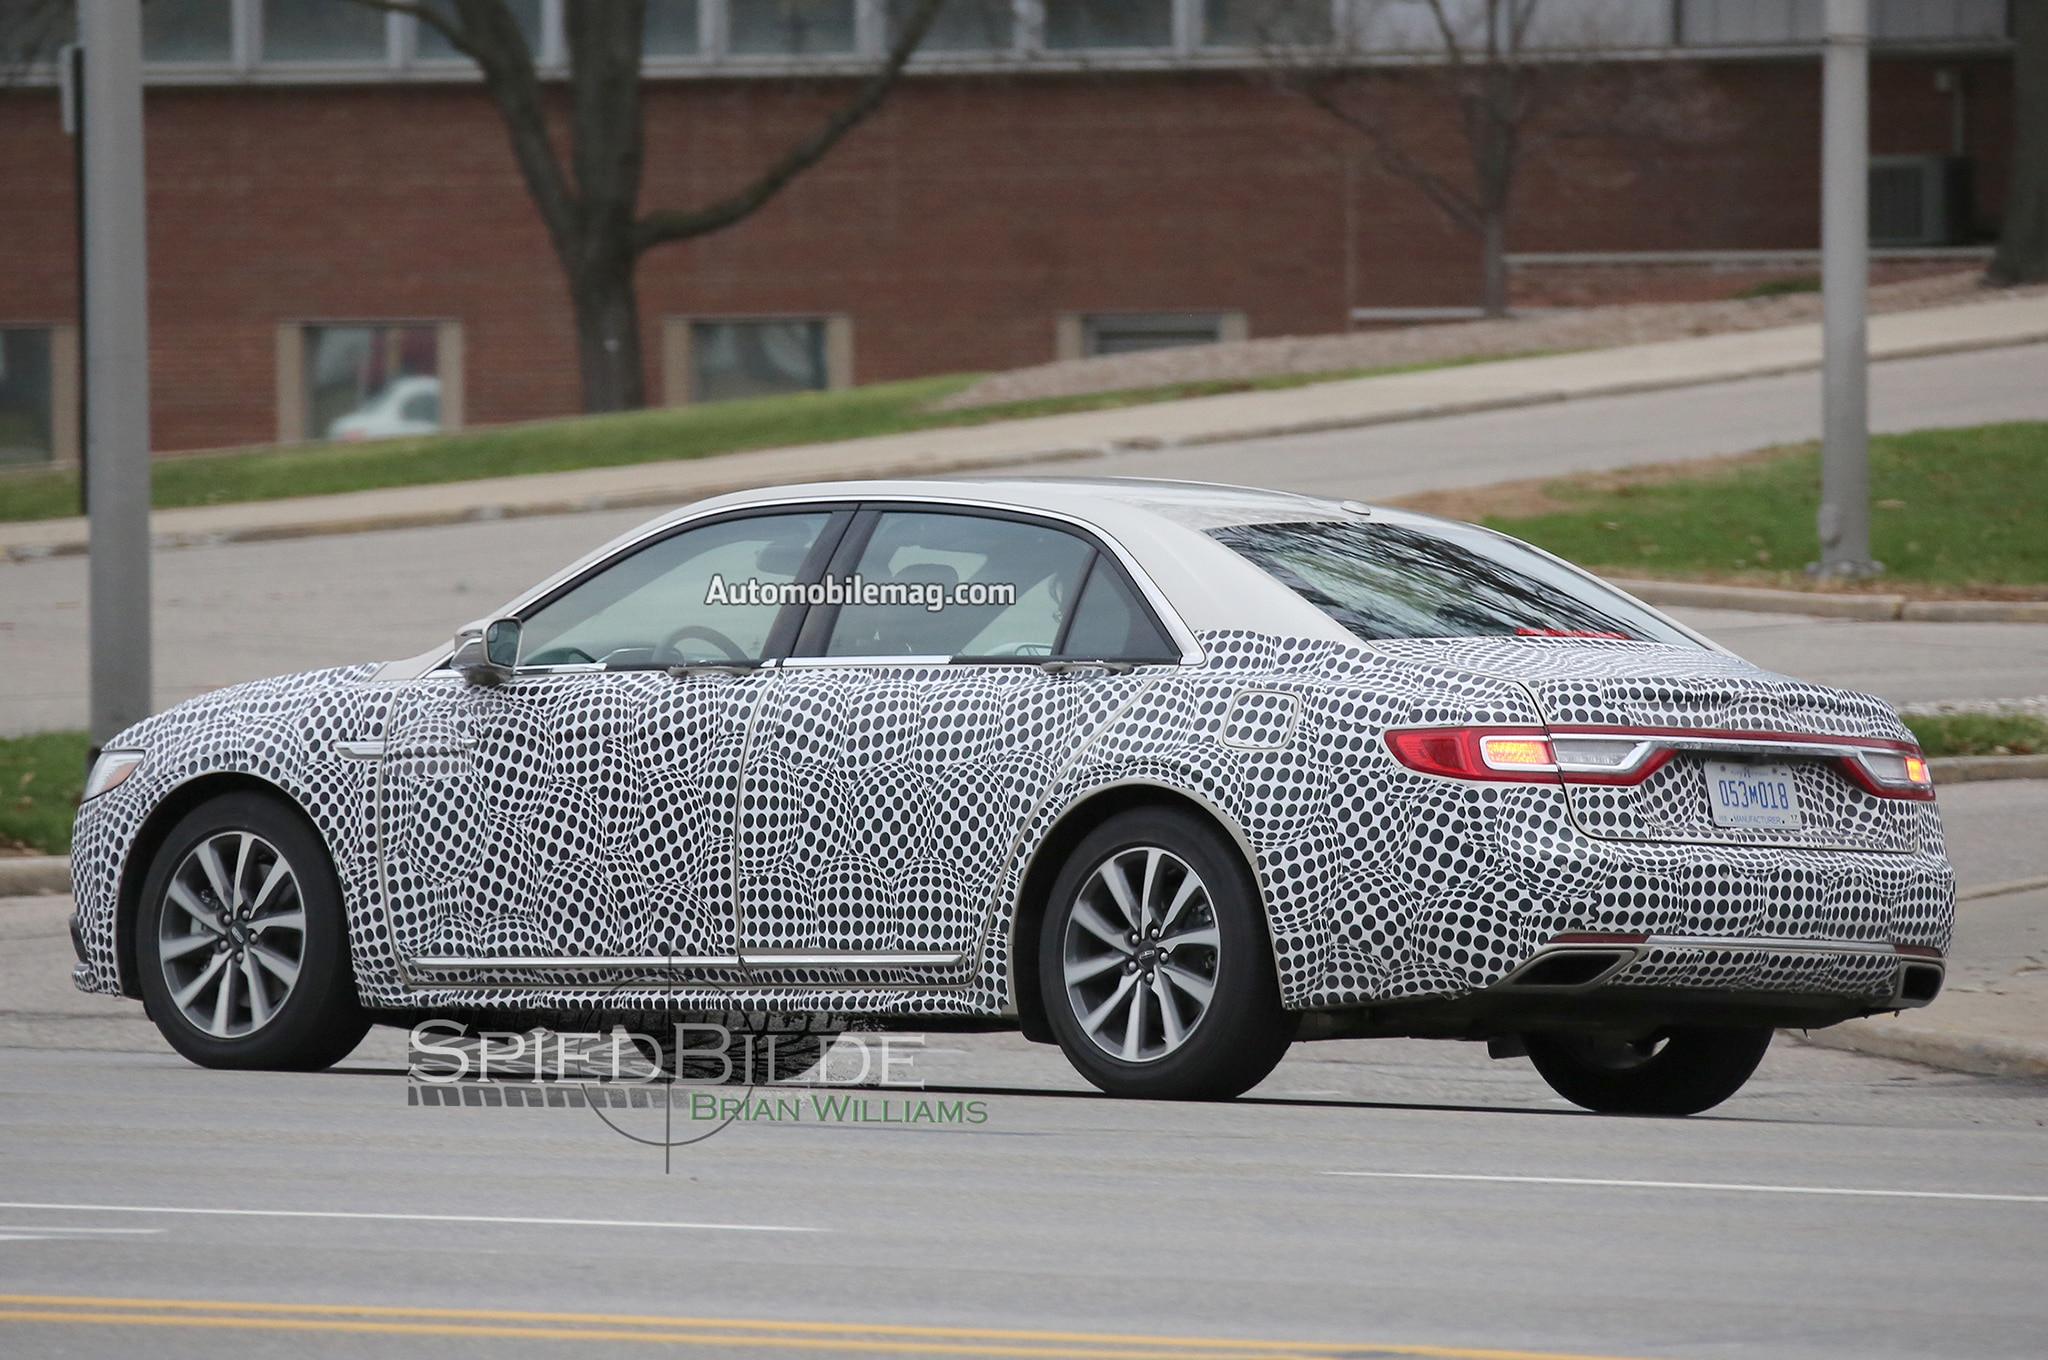 2017 lincoln continental interior spied with sync 3 wood trim - 2017 lincoln continental interior ...